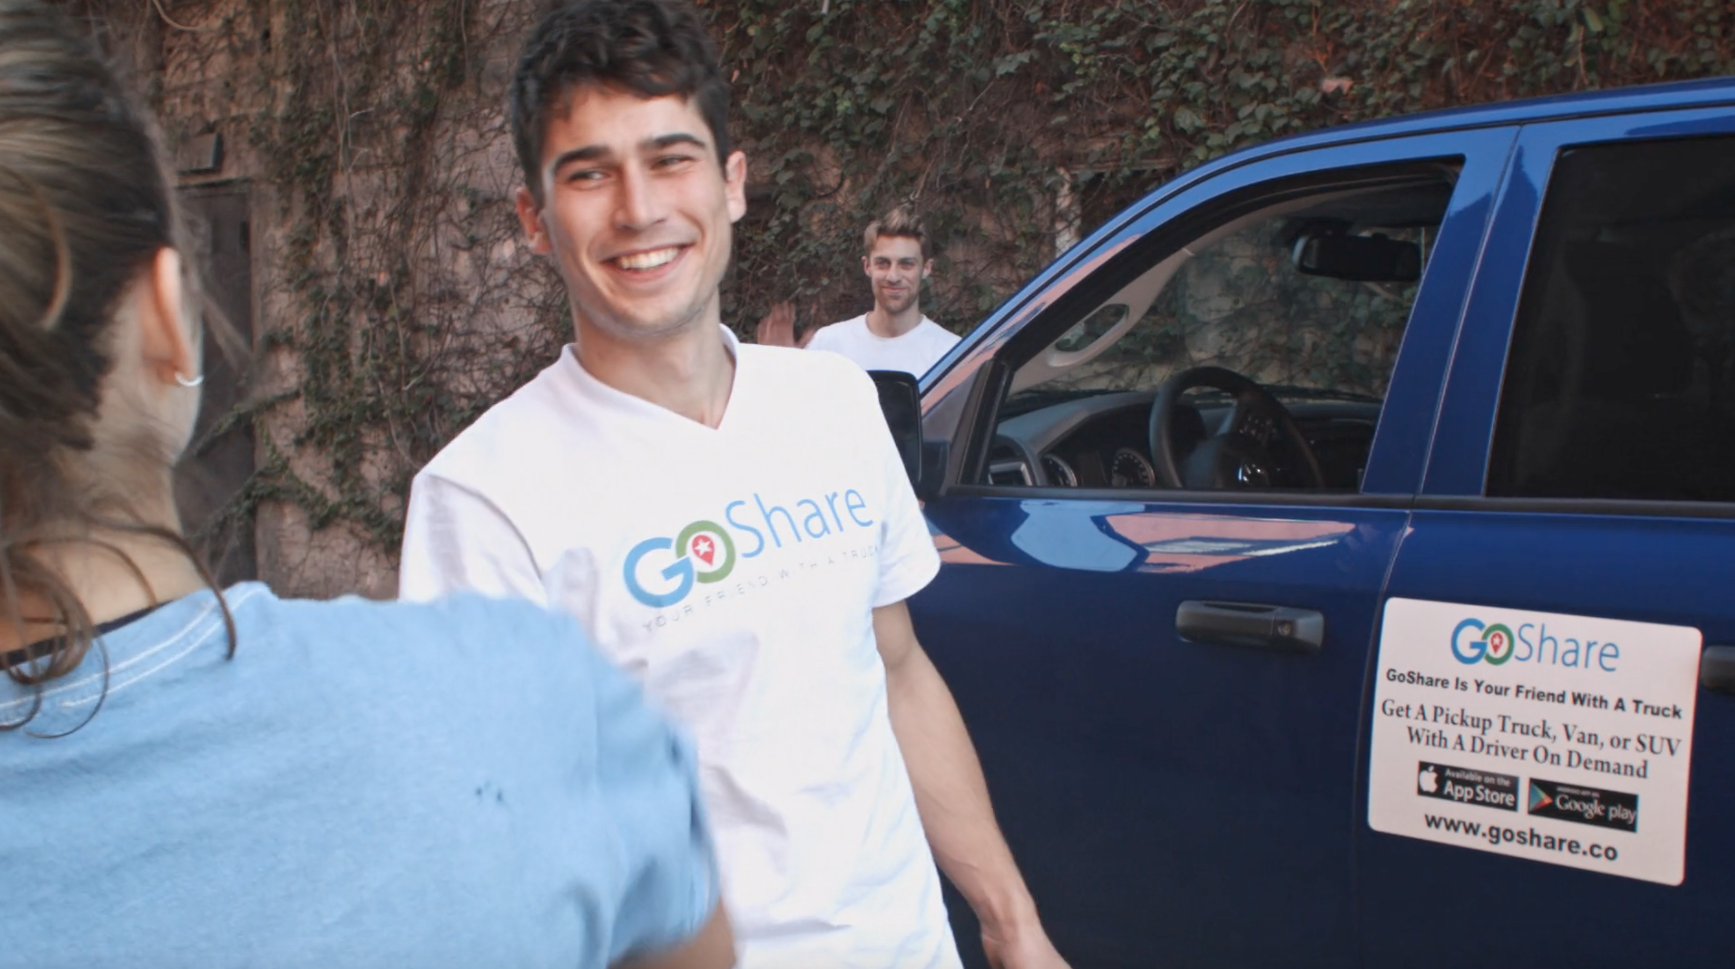 GoShare enables people to rent trucks for hauling large items.